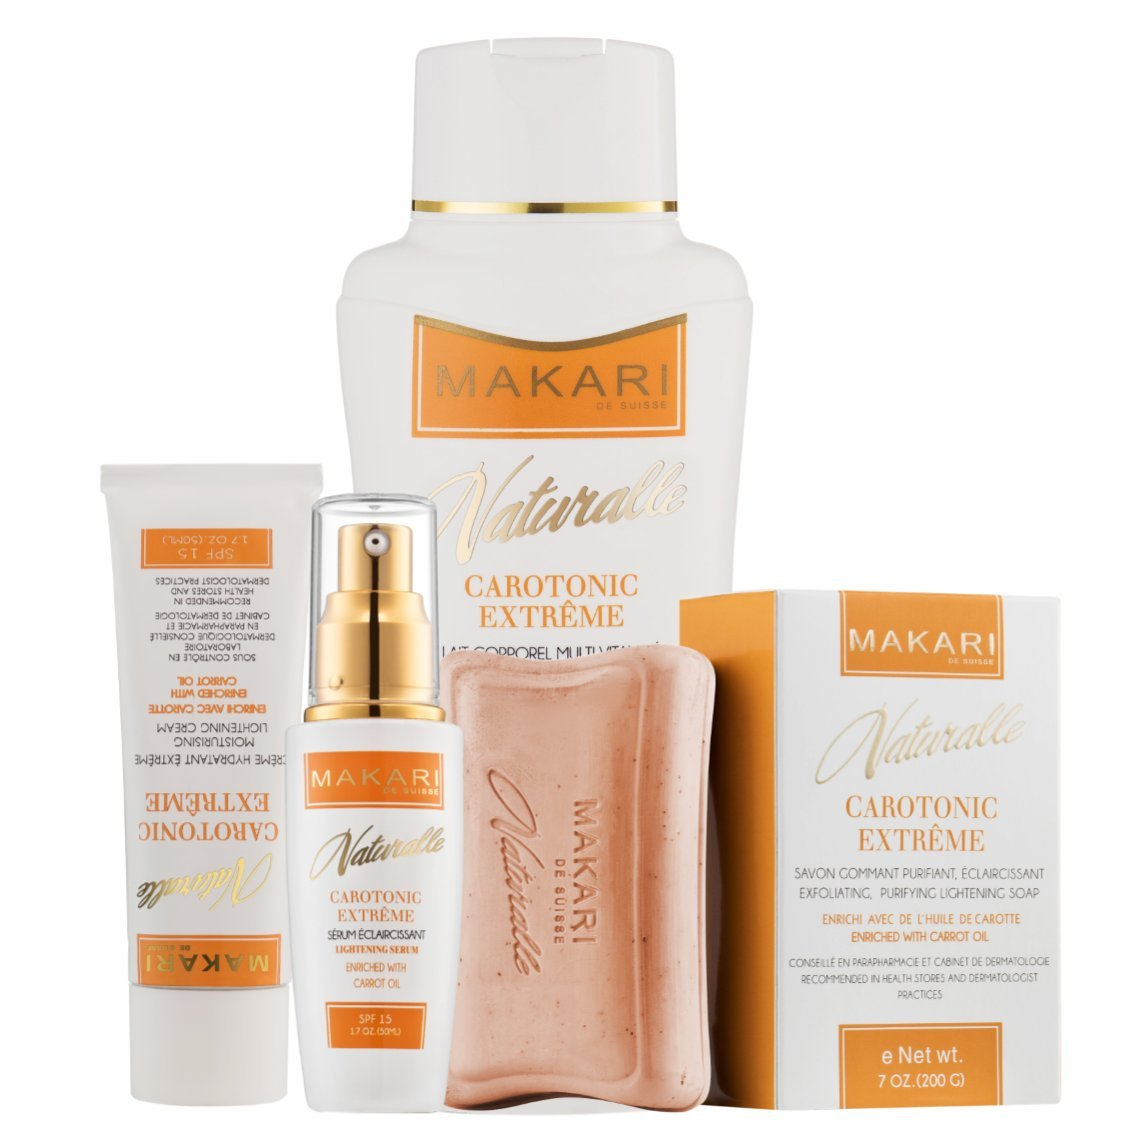 Makari Naturalle Carotonic Extreme Lightening, Toning & Moisturizing Gift Set - Includes Body Milk, Cream, Serum, Gel & Exfoliating Soap by MAKARI